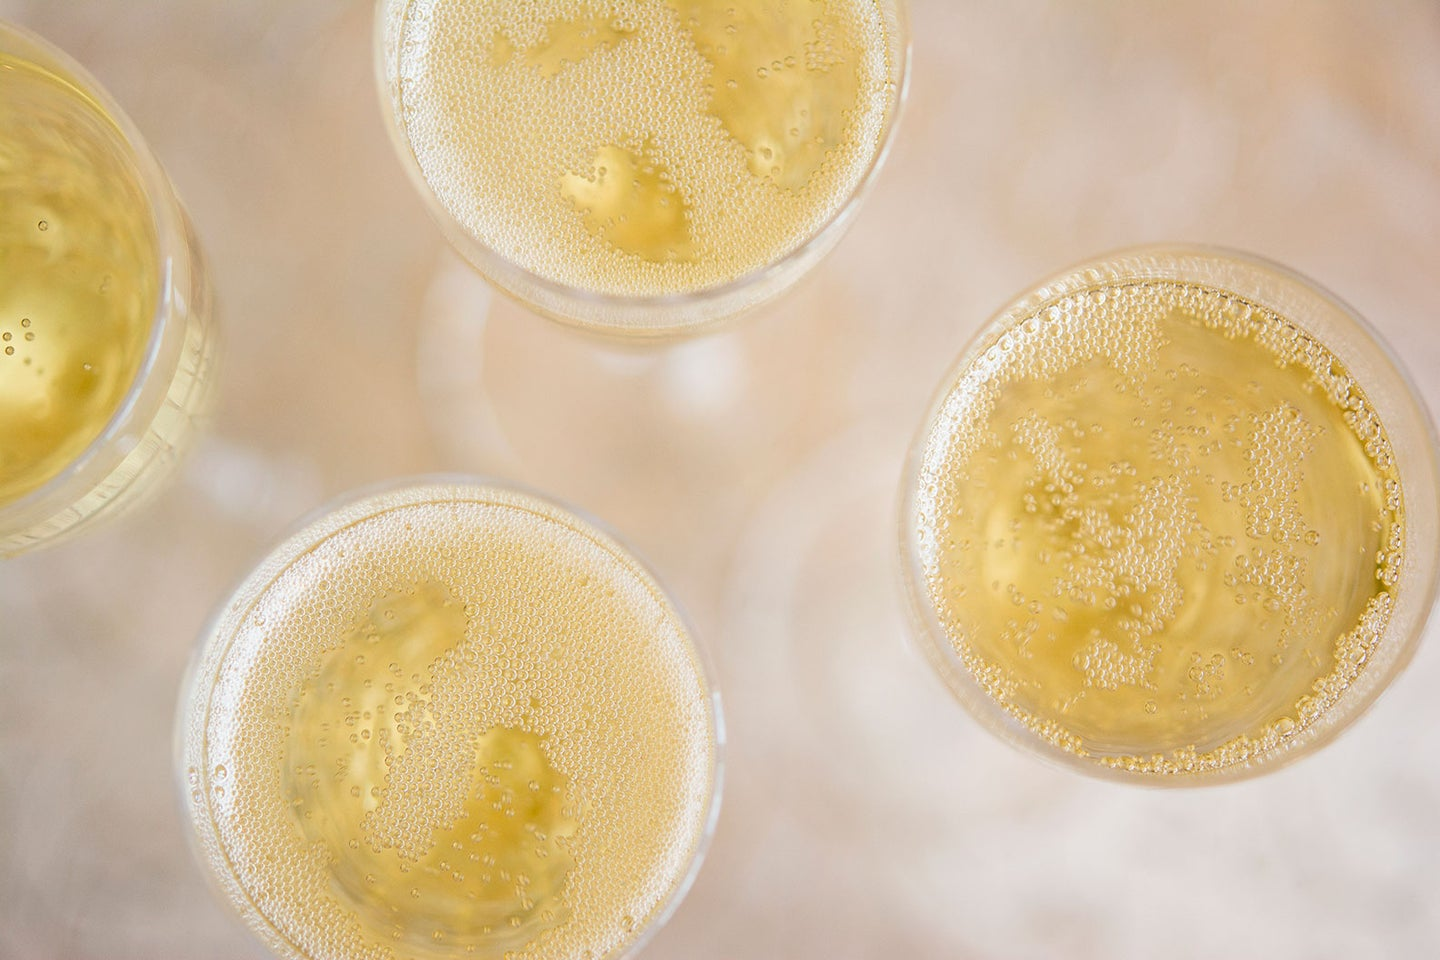 champagne glasses from above